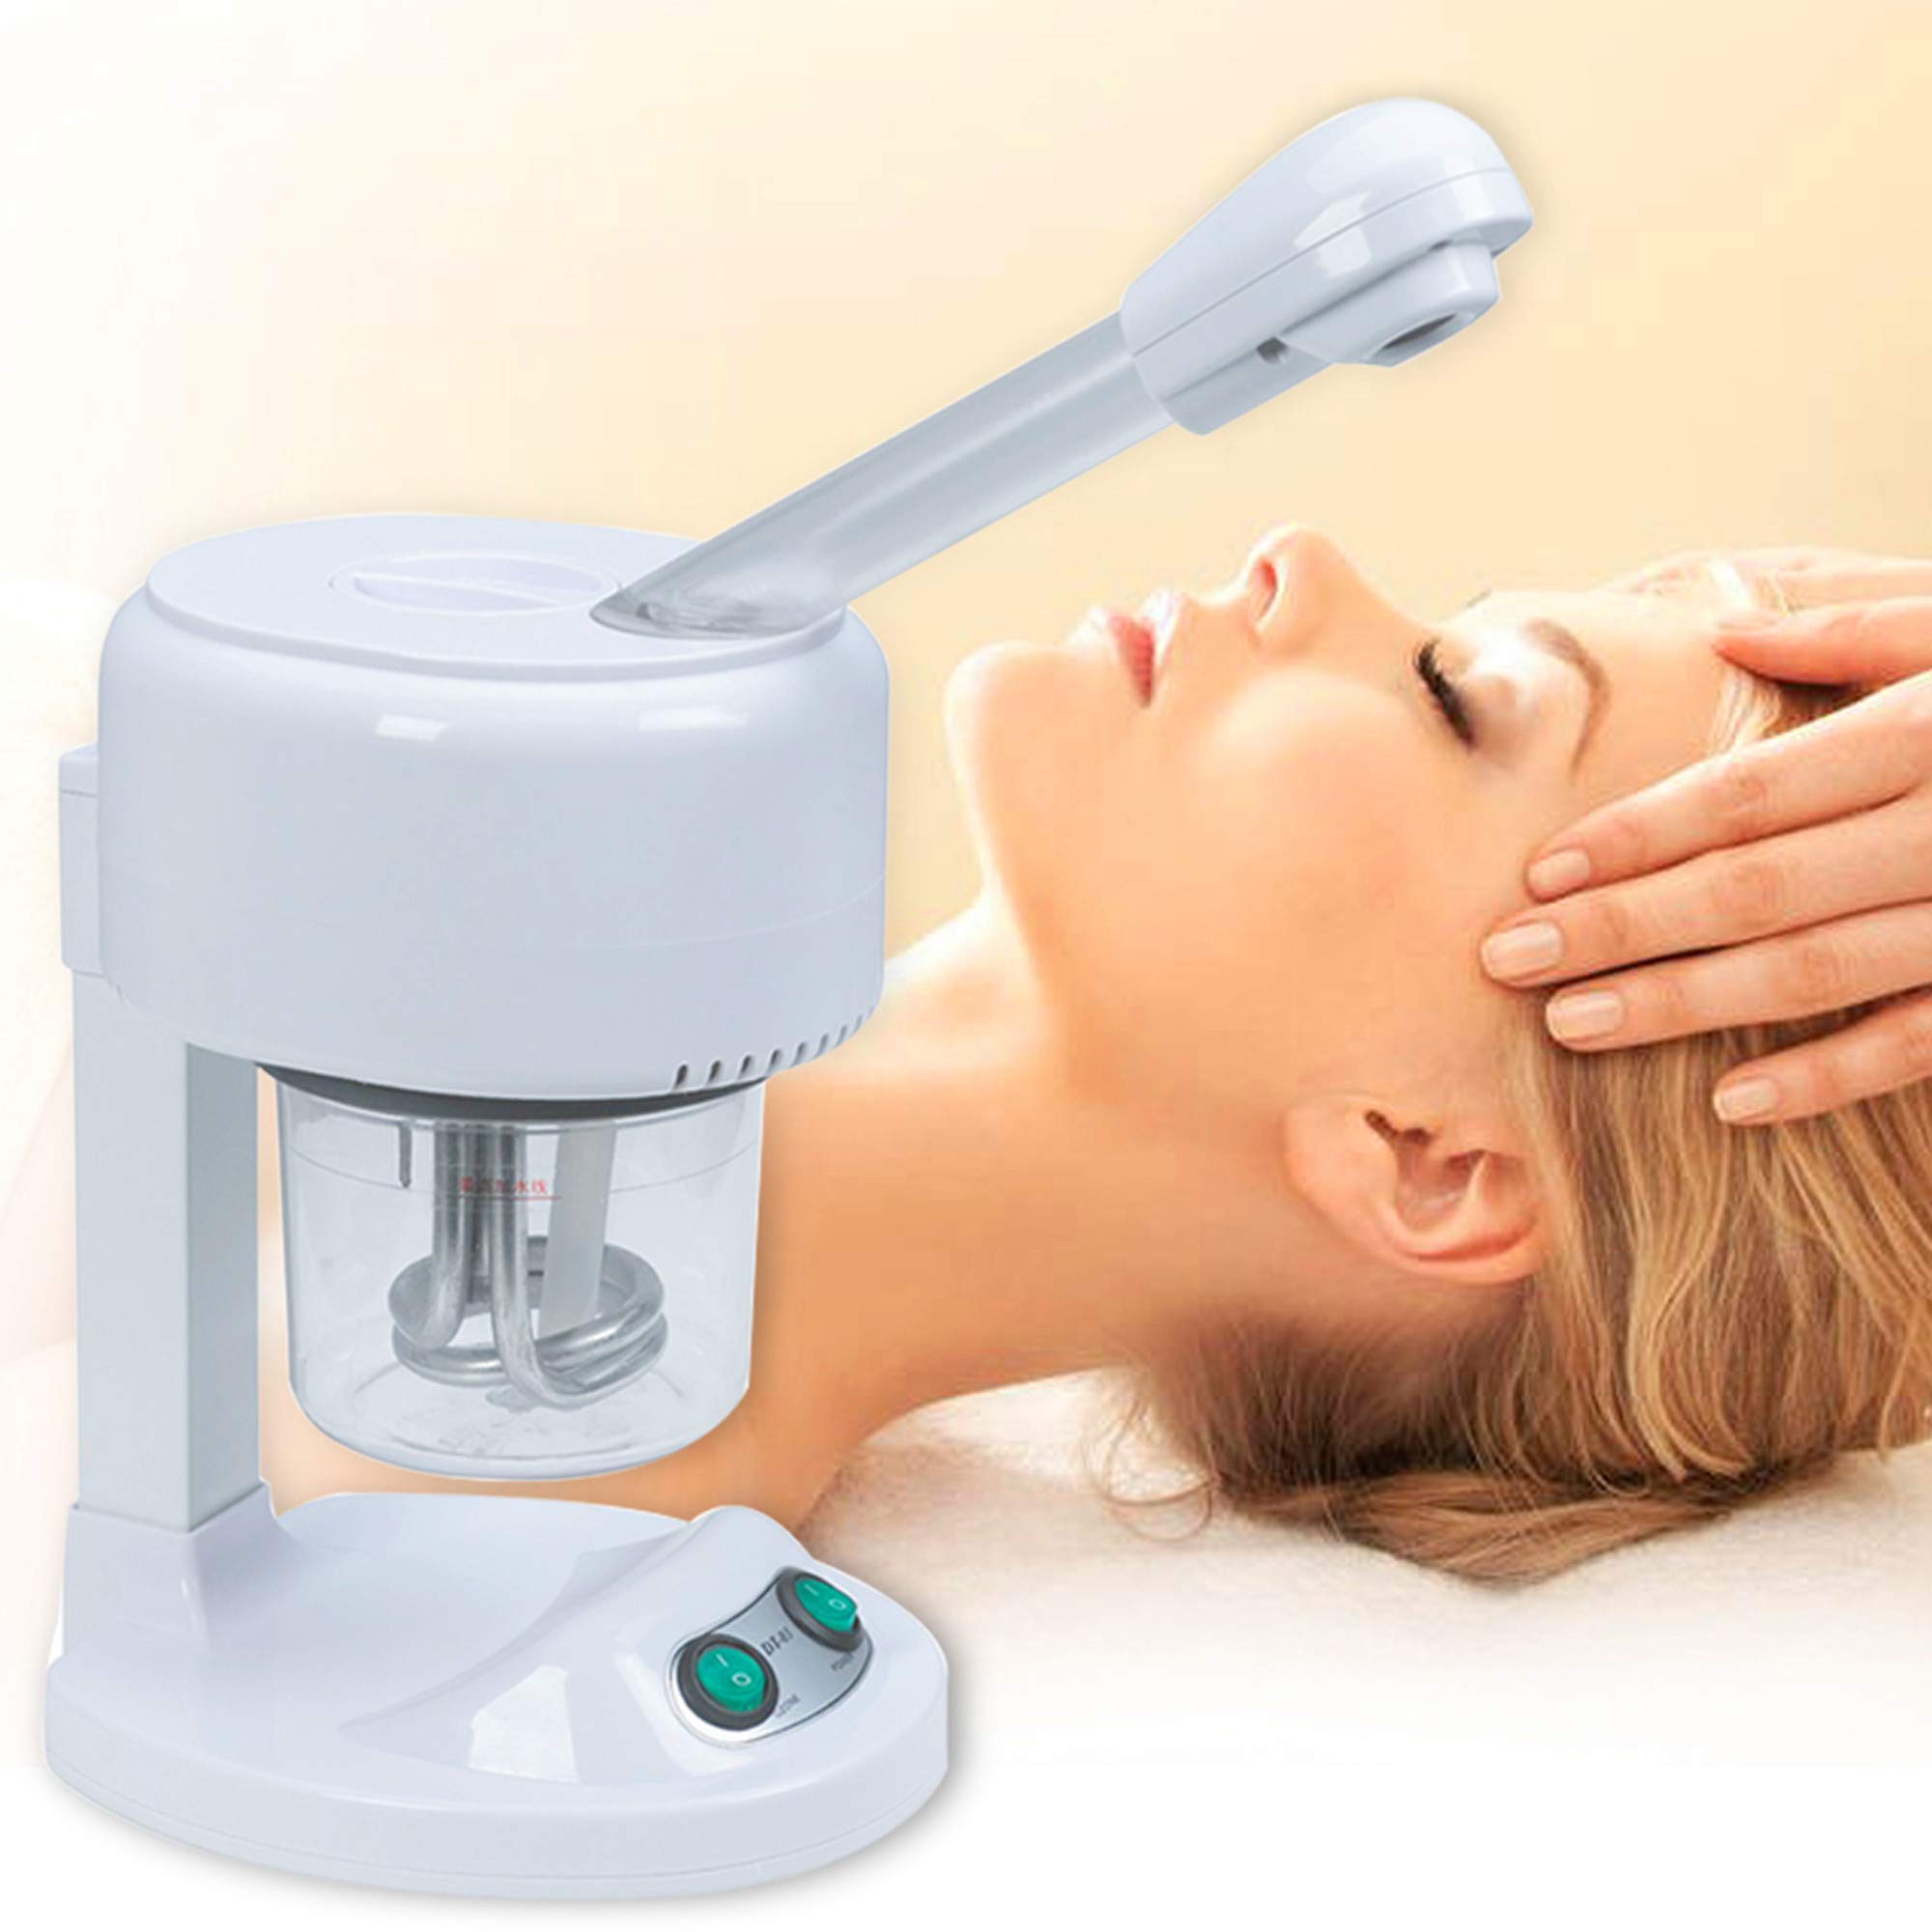 Facial Steamer, Hot Mist, Ozone Humidifier, Can Use at Home and Beauty Salon, Extract Blackheads, Rejuvenate and Hydrate Your Face Skin for Youthful Complexion, Table